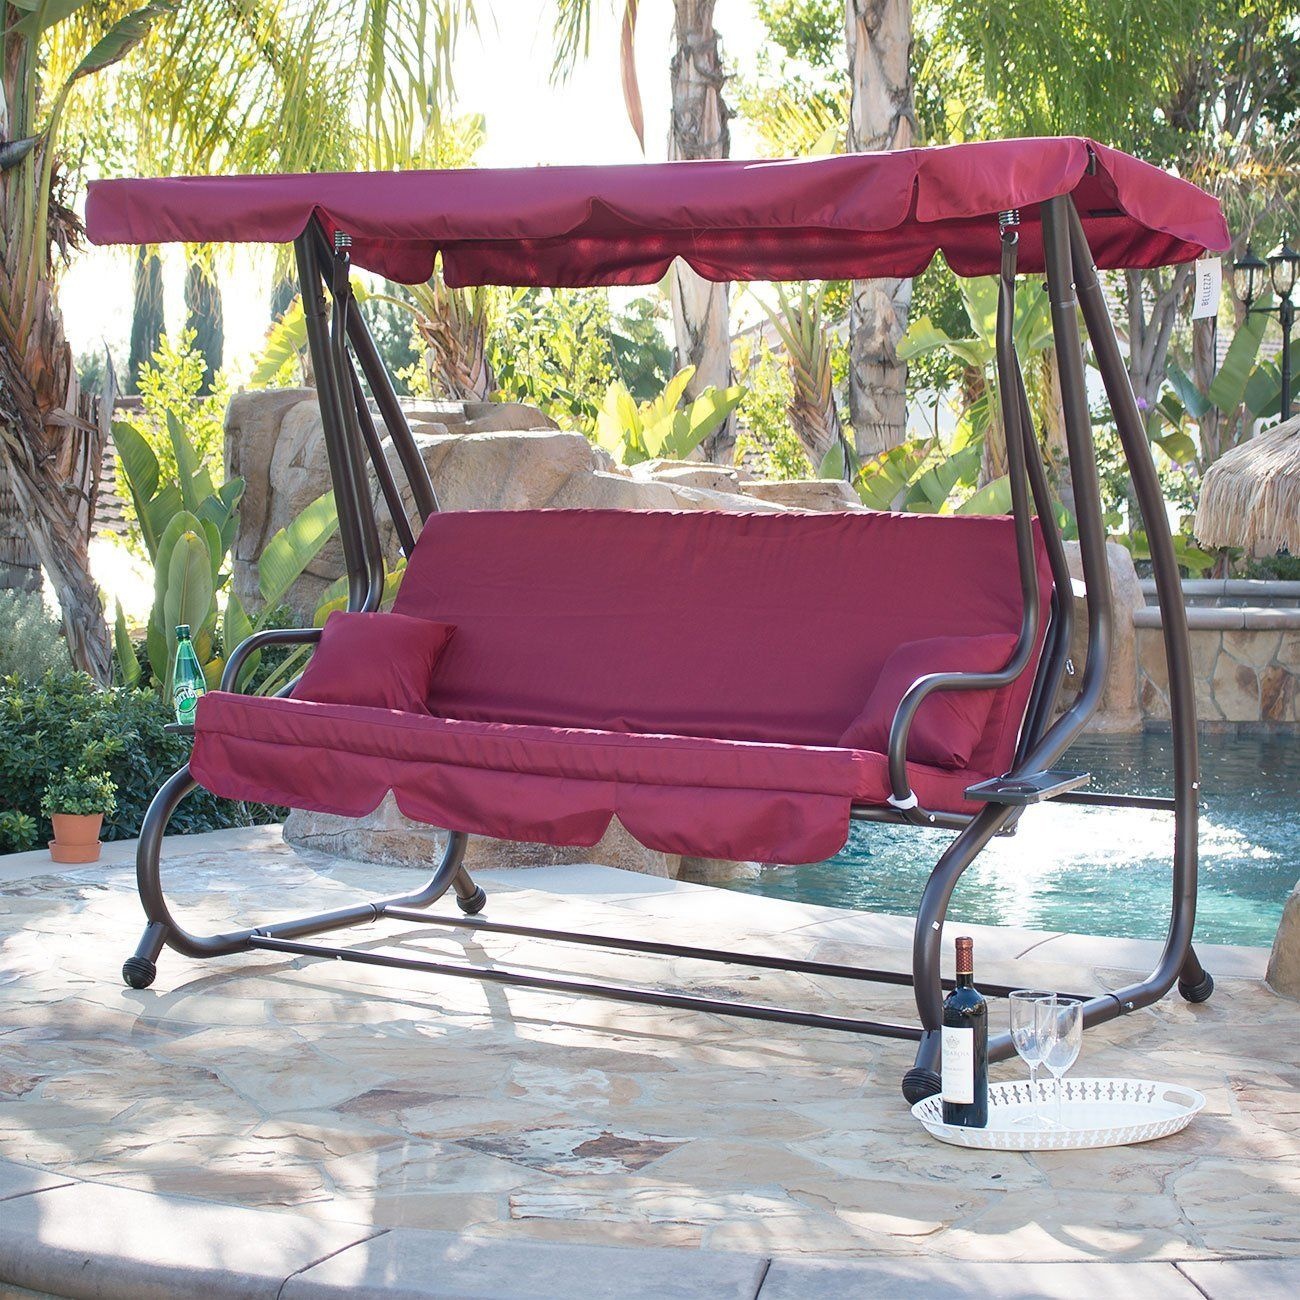 Amazon : Bellezza© Outdoor Canopy Porch Swing/bed Pertaining To Garden Leisure Outdoor Hammock Patio Canopy Rocking Chairs (View 4 of 25)